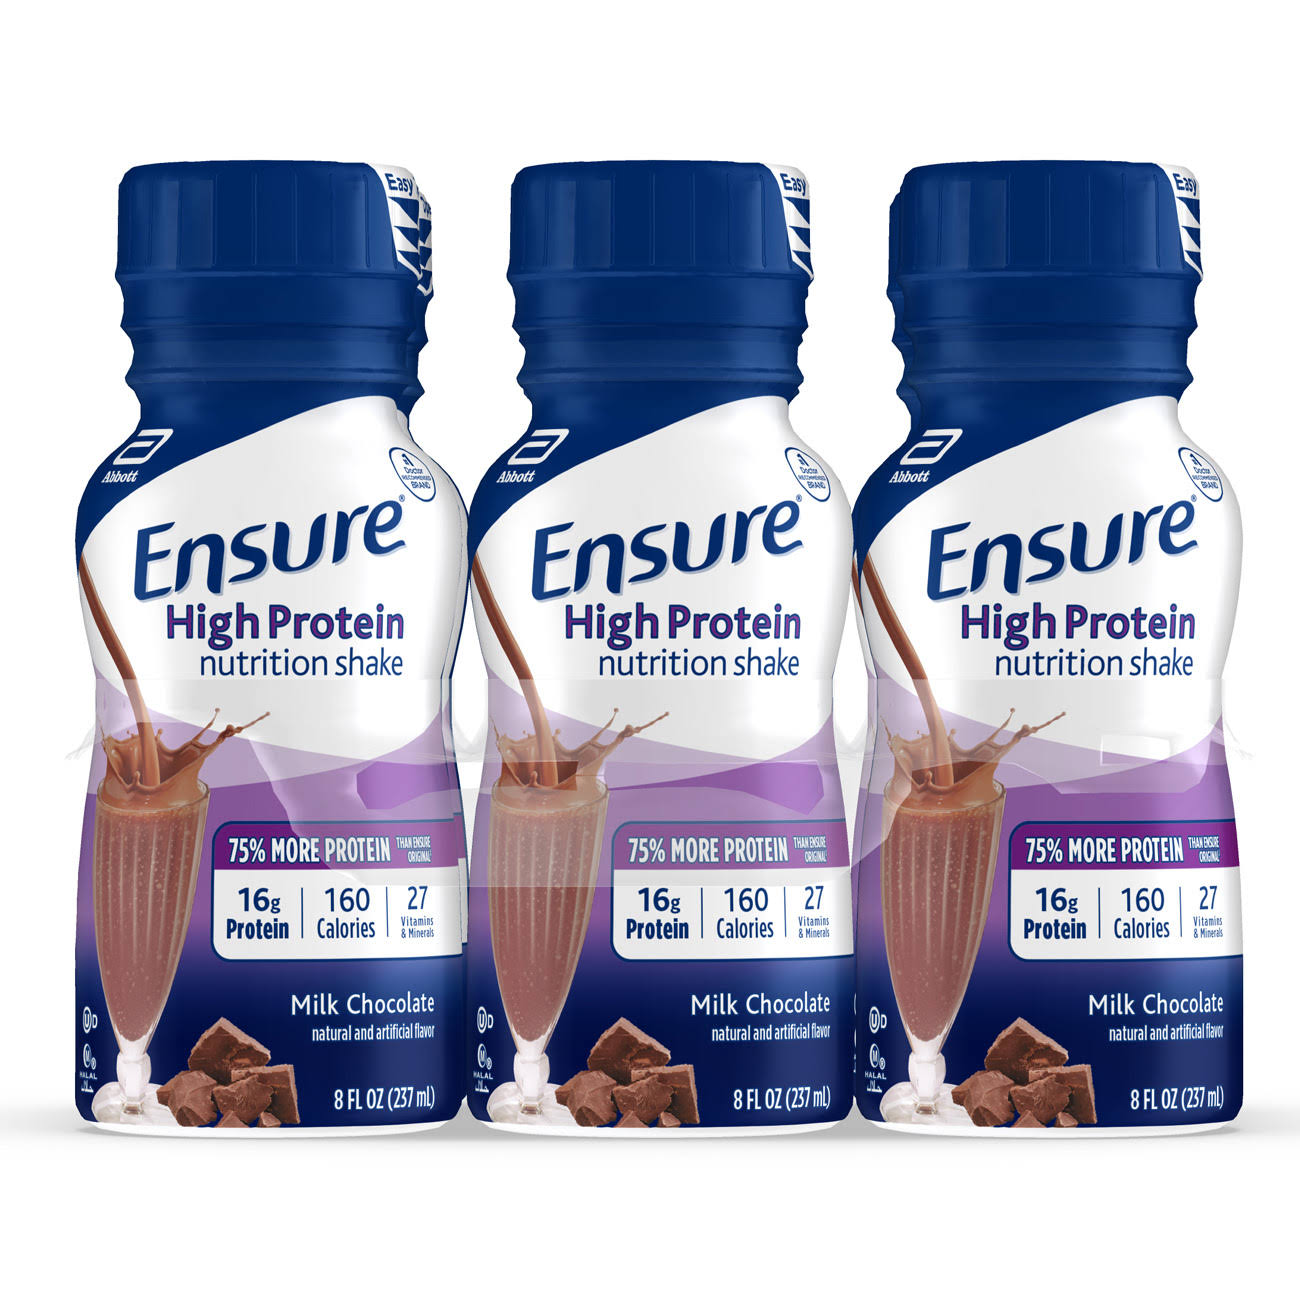 Ensure High Protein Nutrition Shake - Milk Chocolate, 8oz